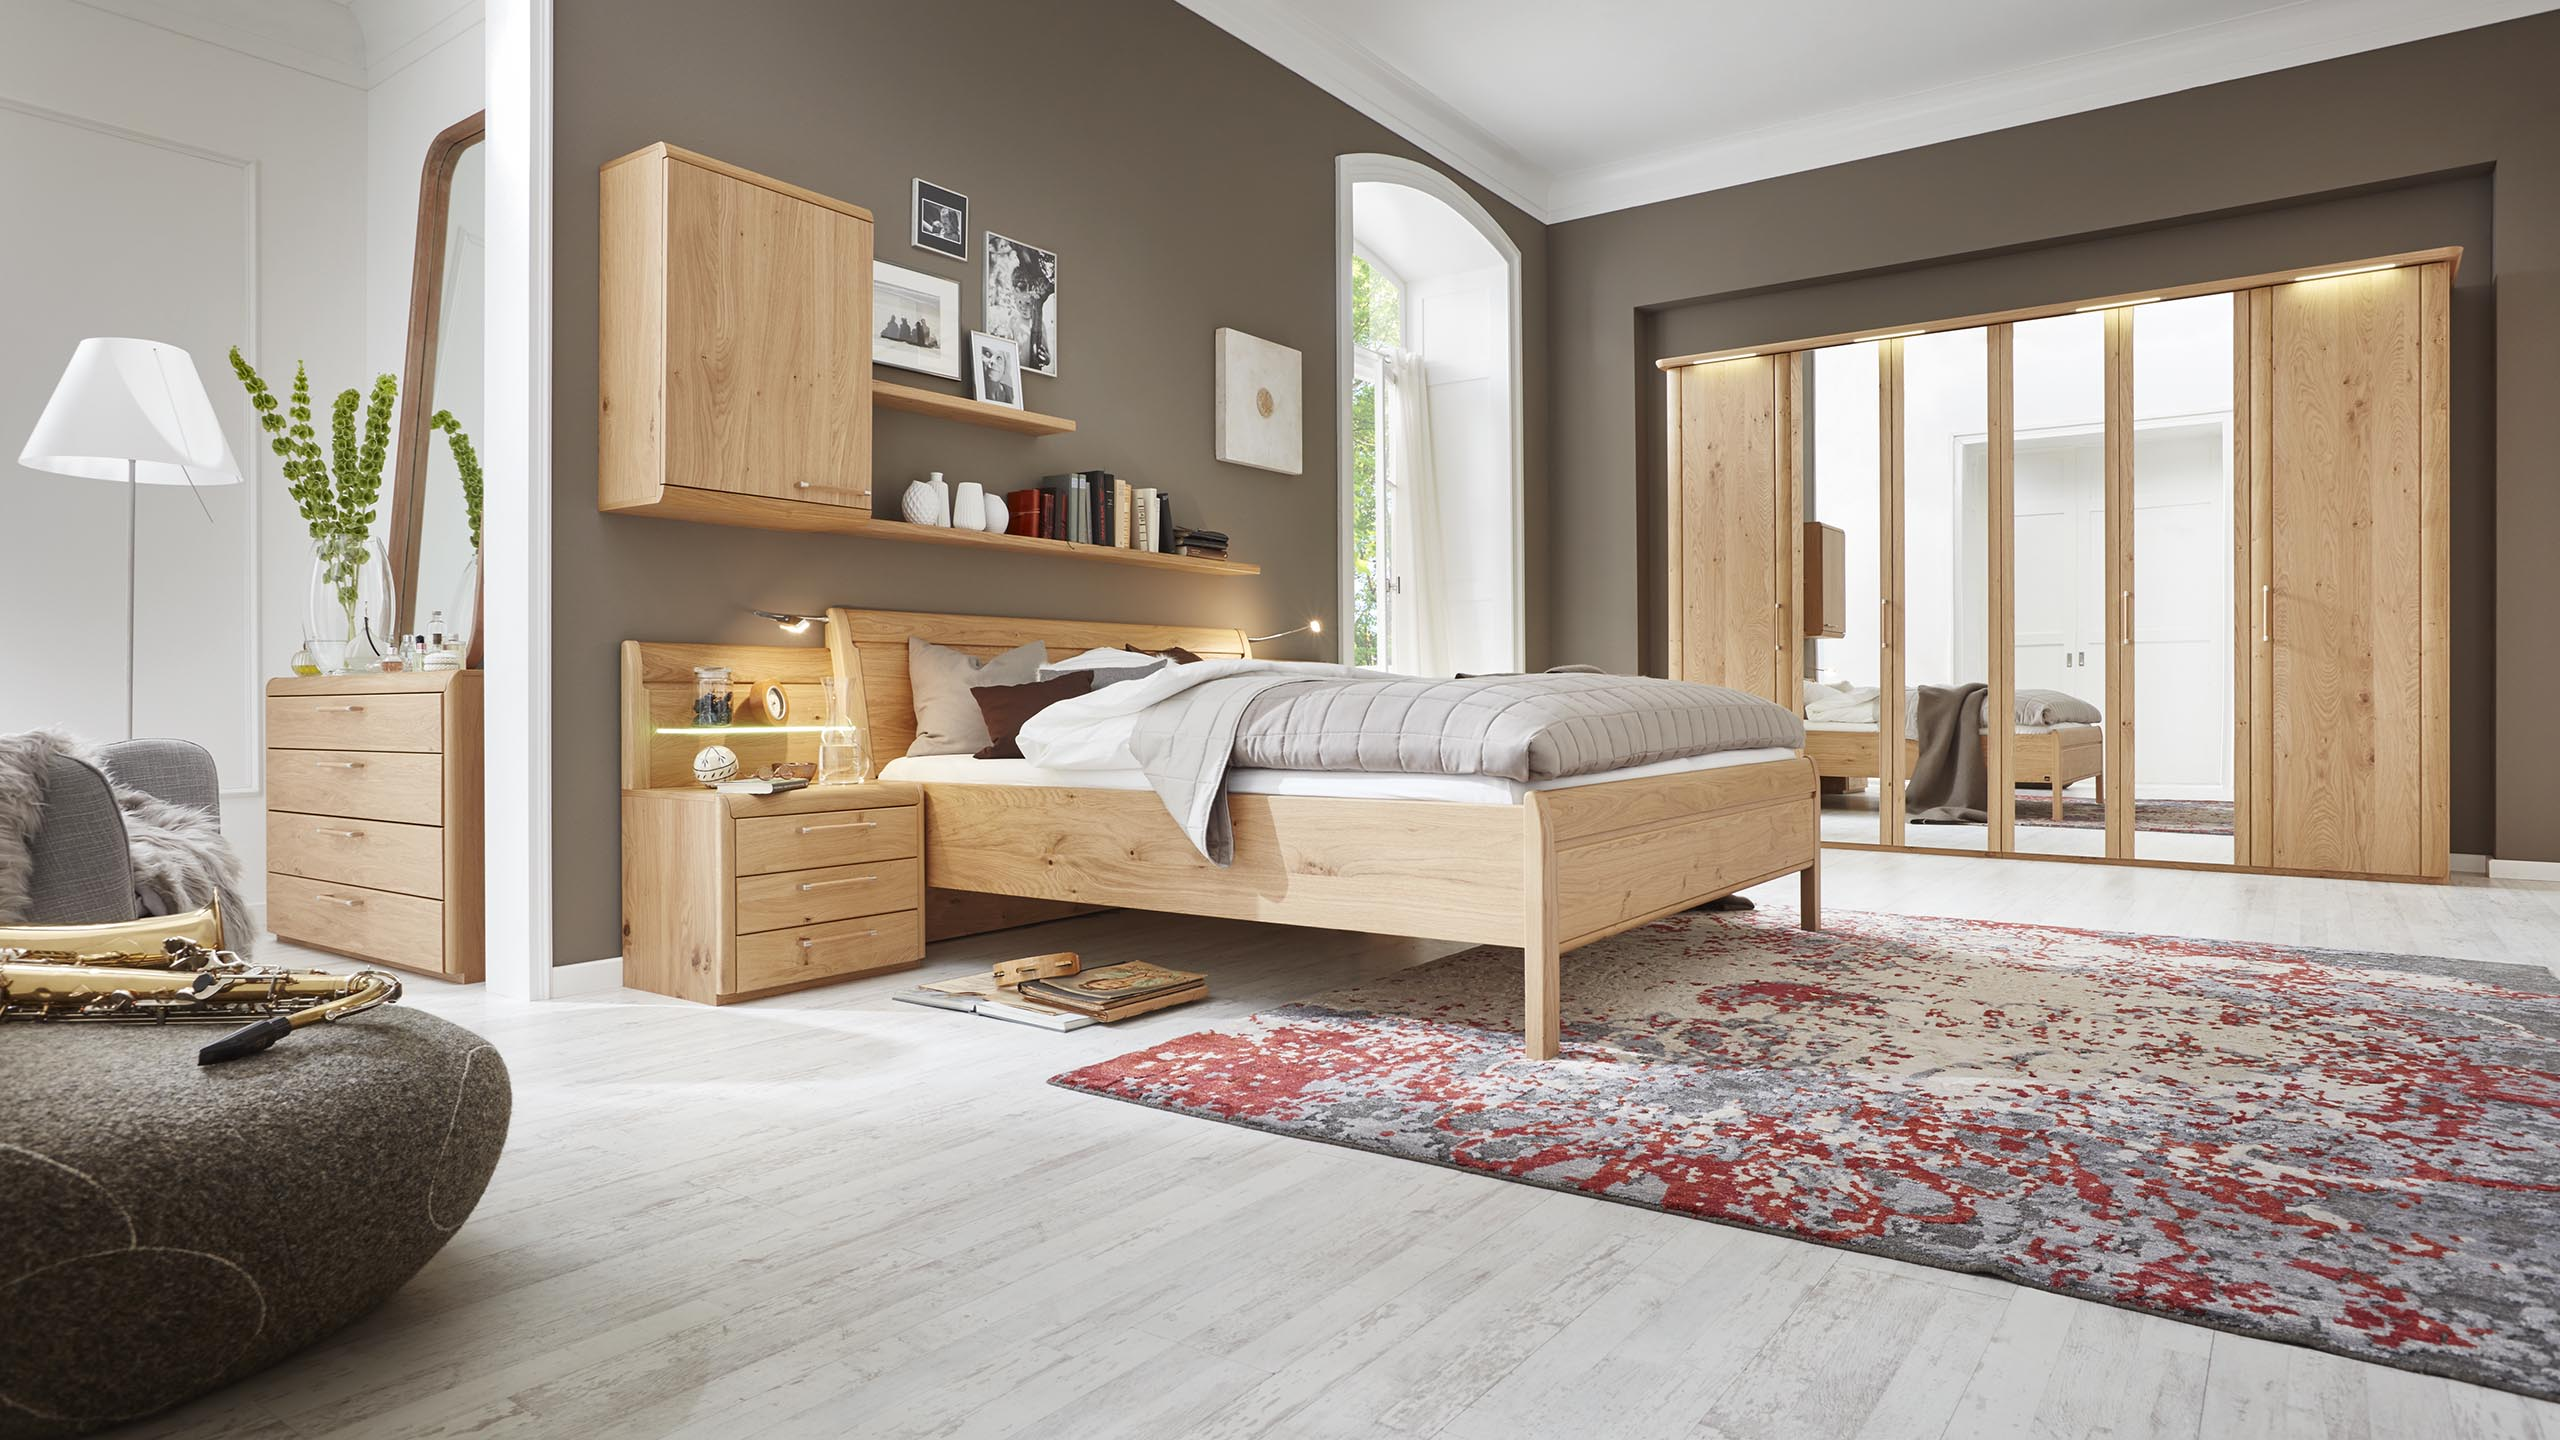 interliving schlafzimmer serie 1001 schlafzimmer wildeiche m bel fischer. Black Bedroom Furniture Sets. Home Design Ideas